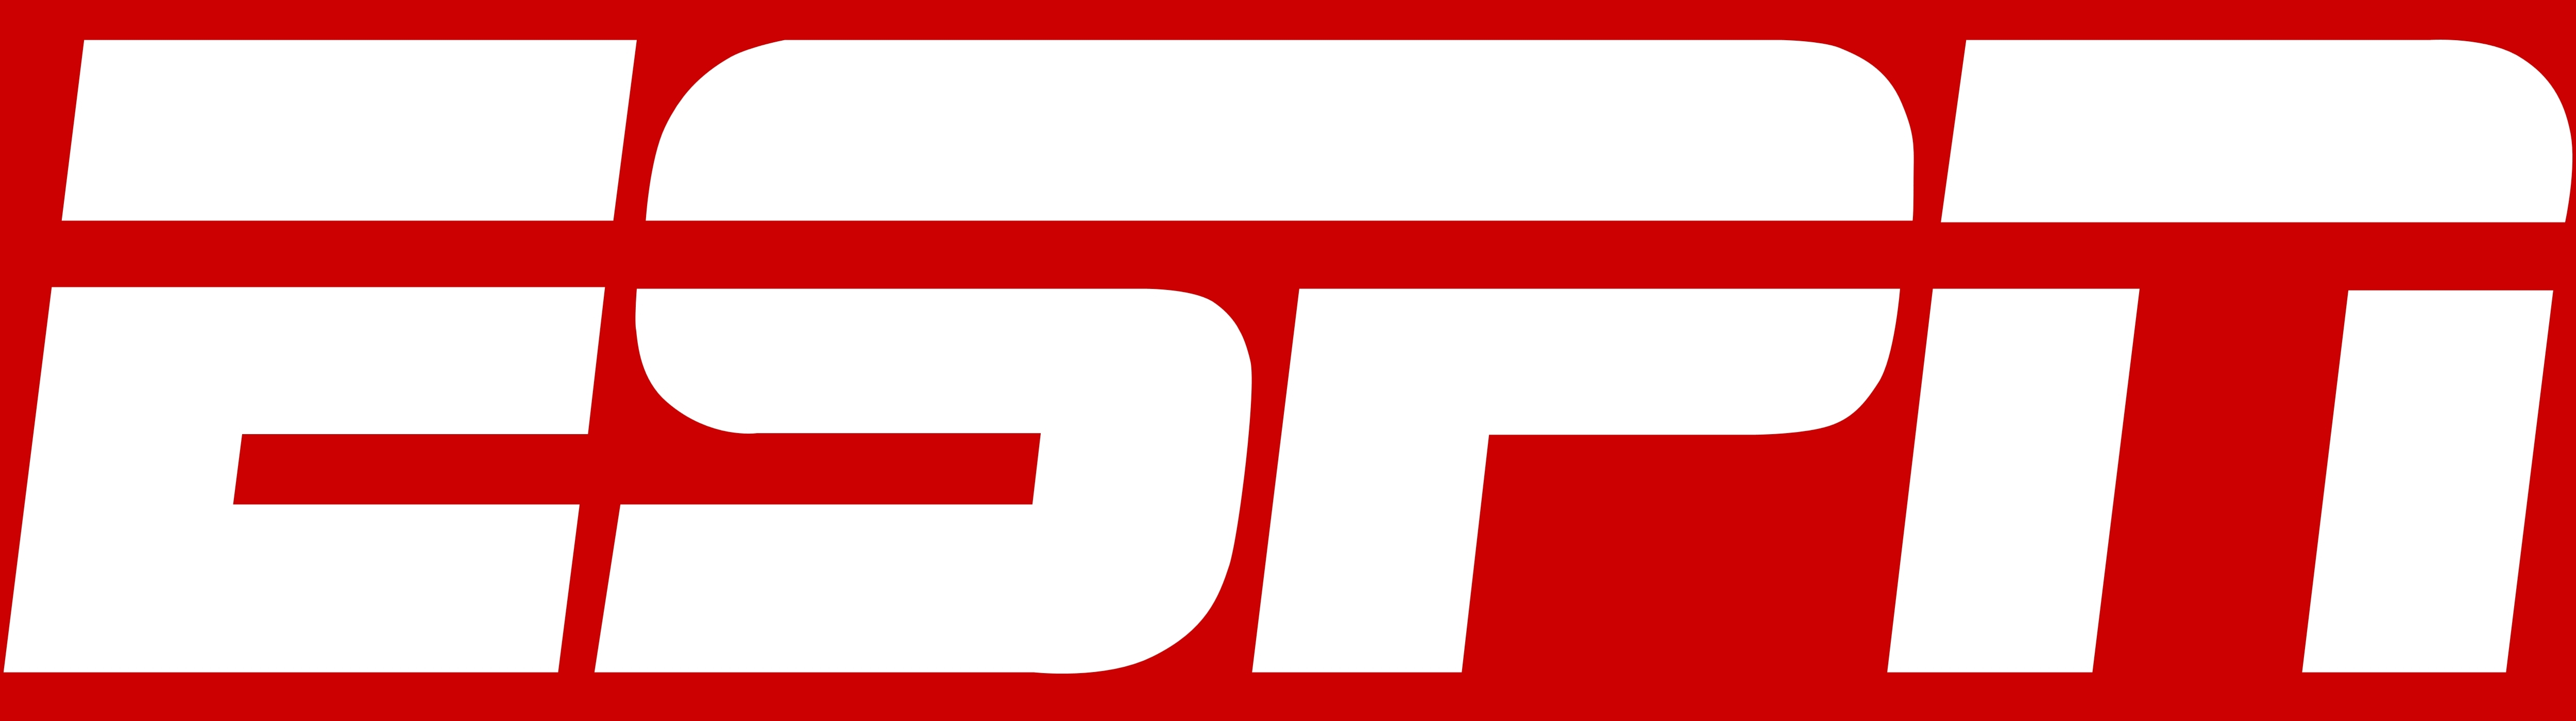 about espn Check out this new story published at espnfccom.